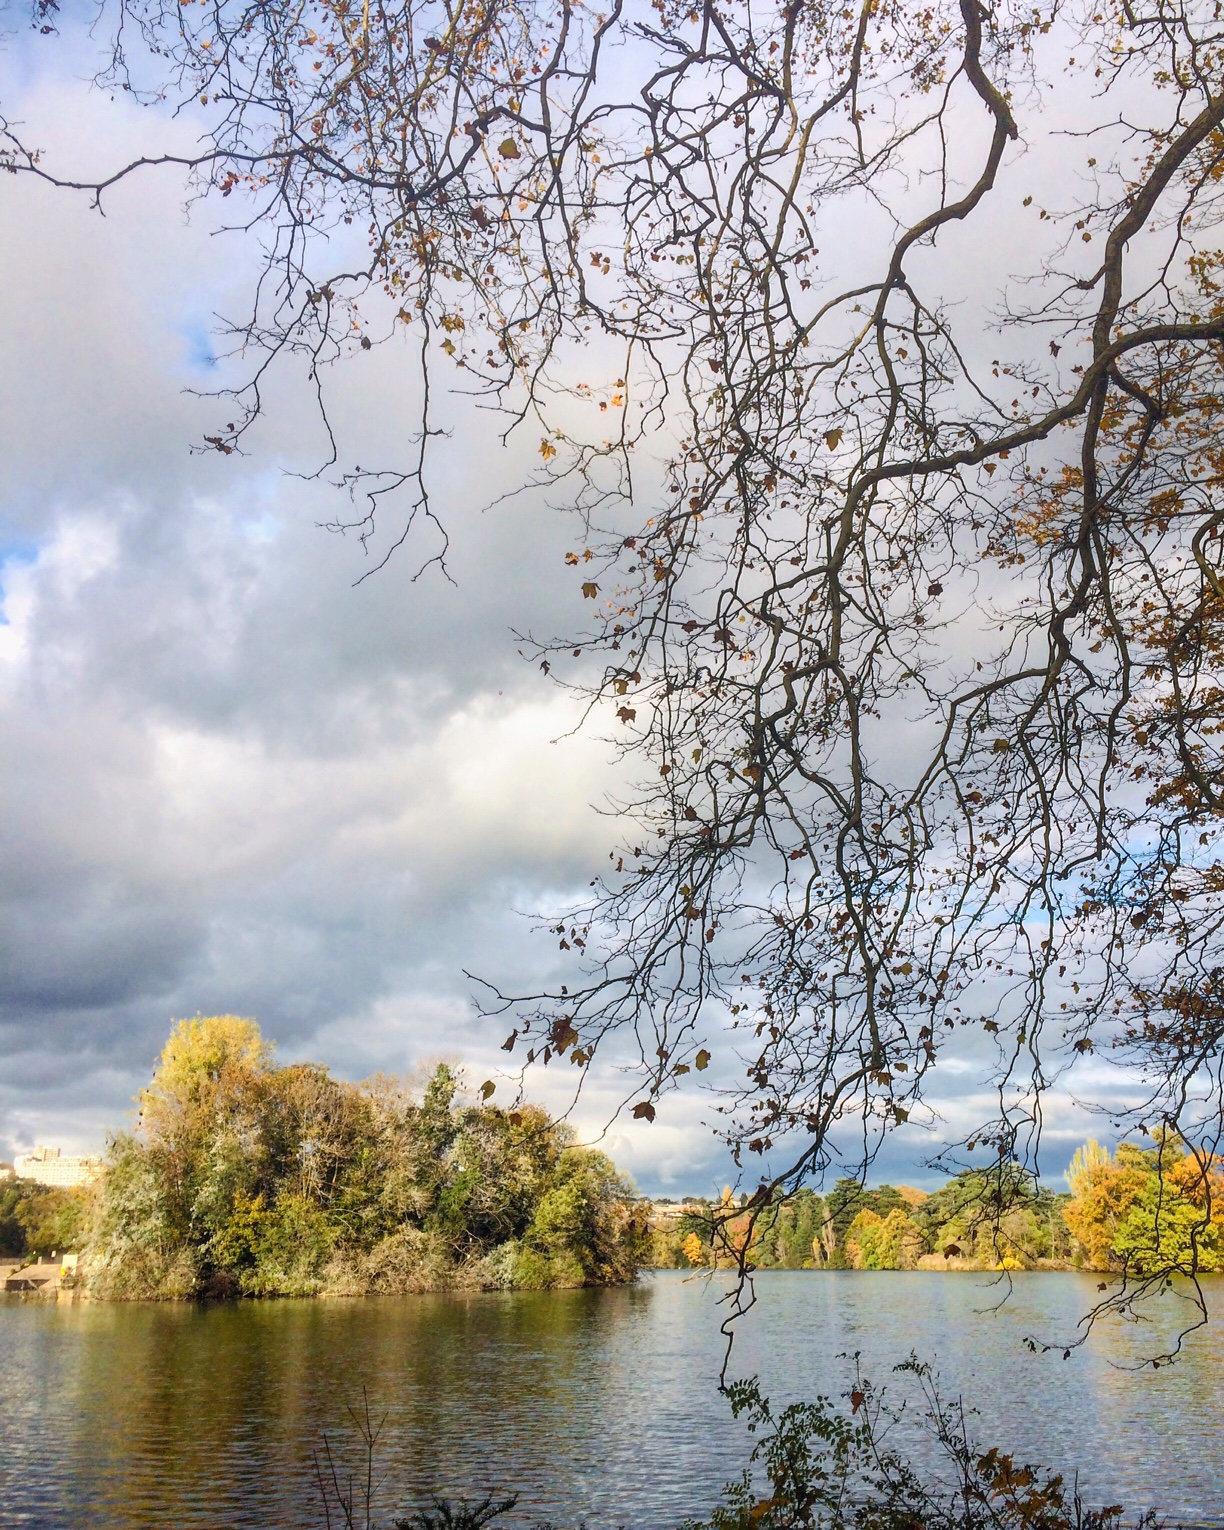 Parc de la tête d'or à Lyon, photo du Lac